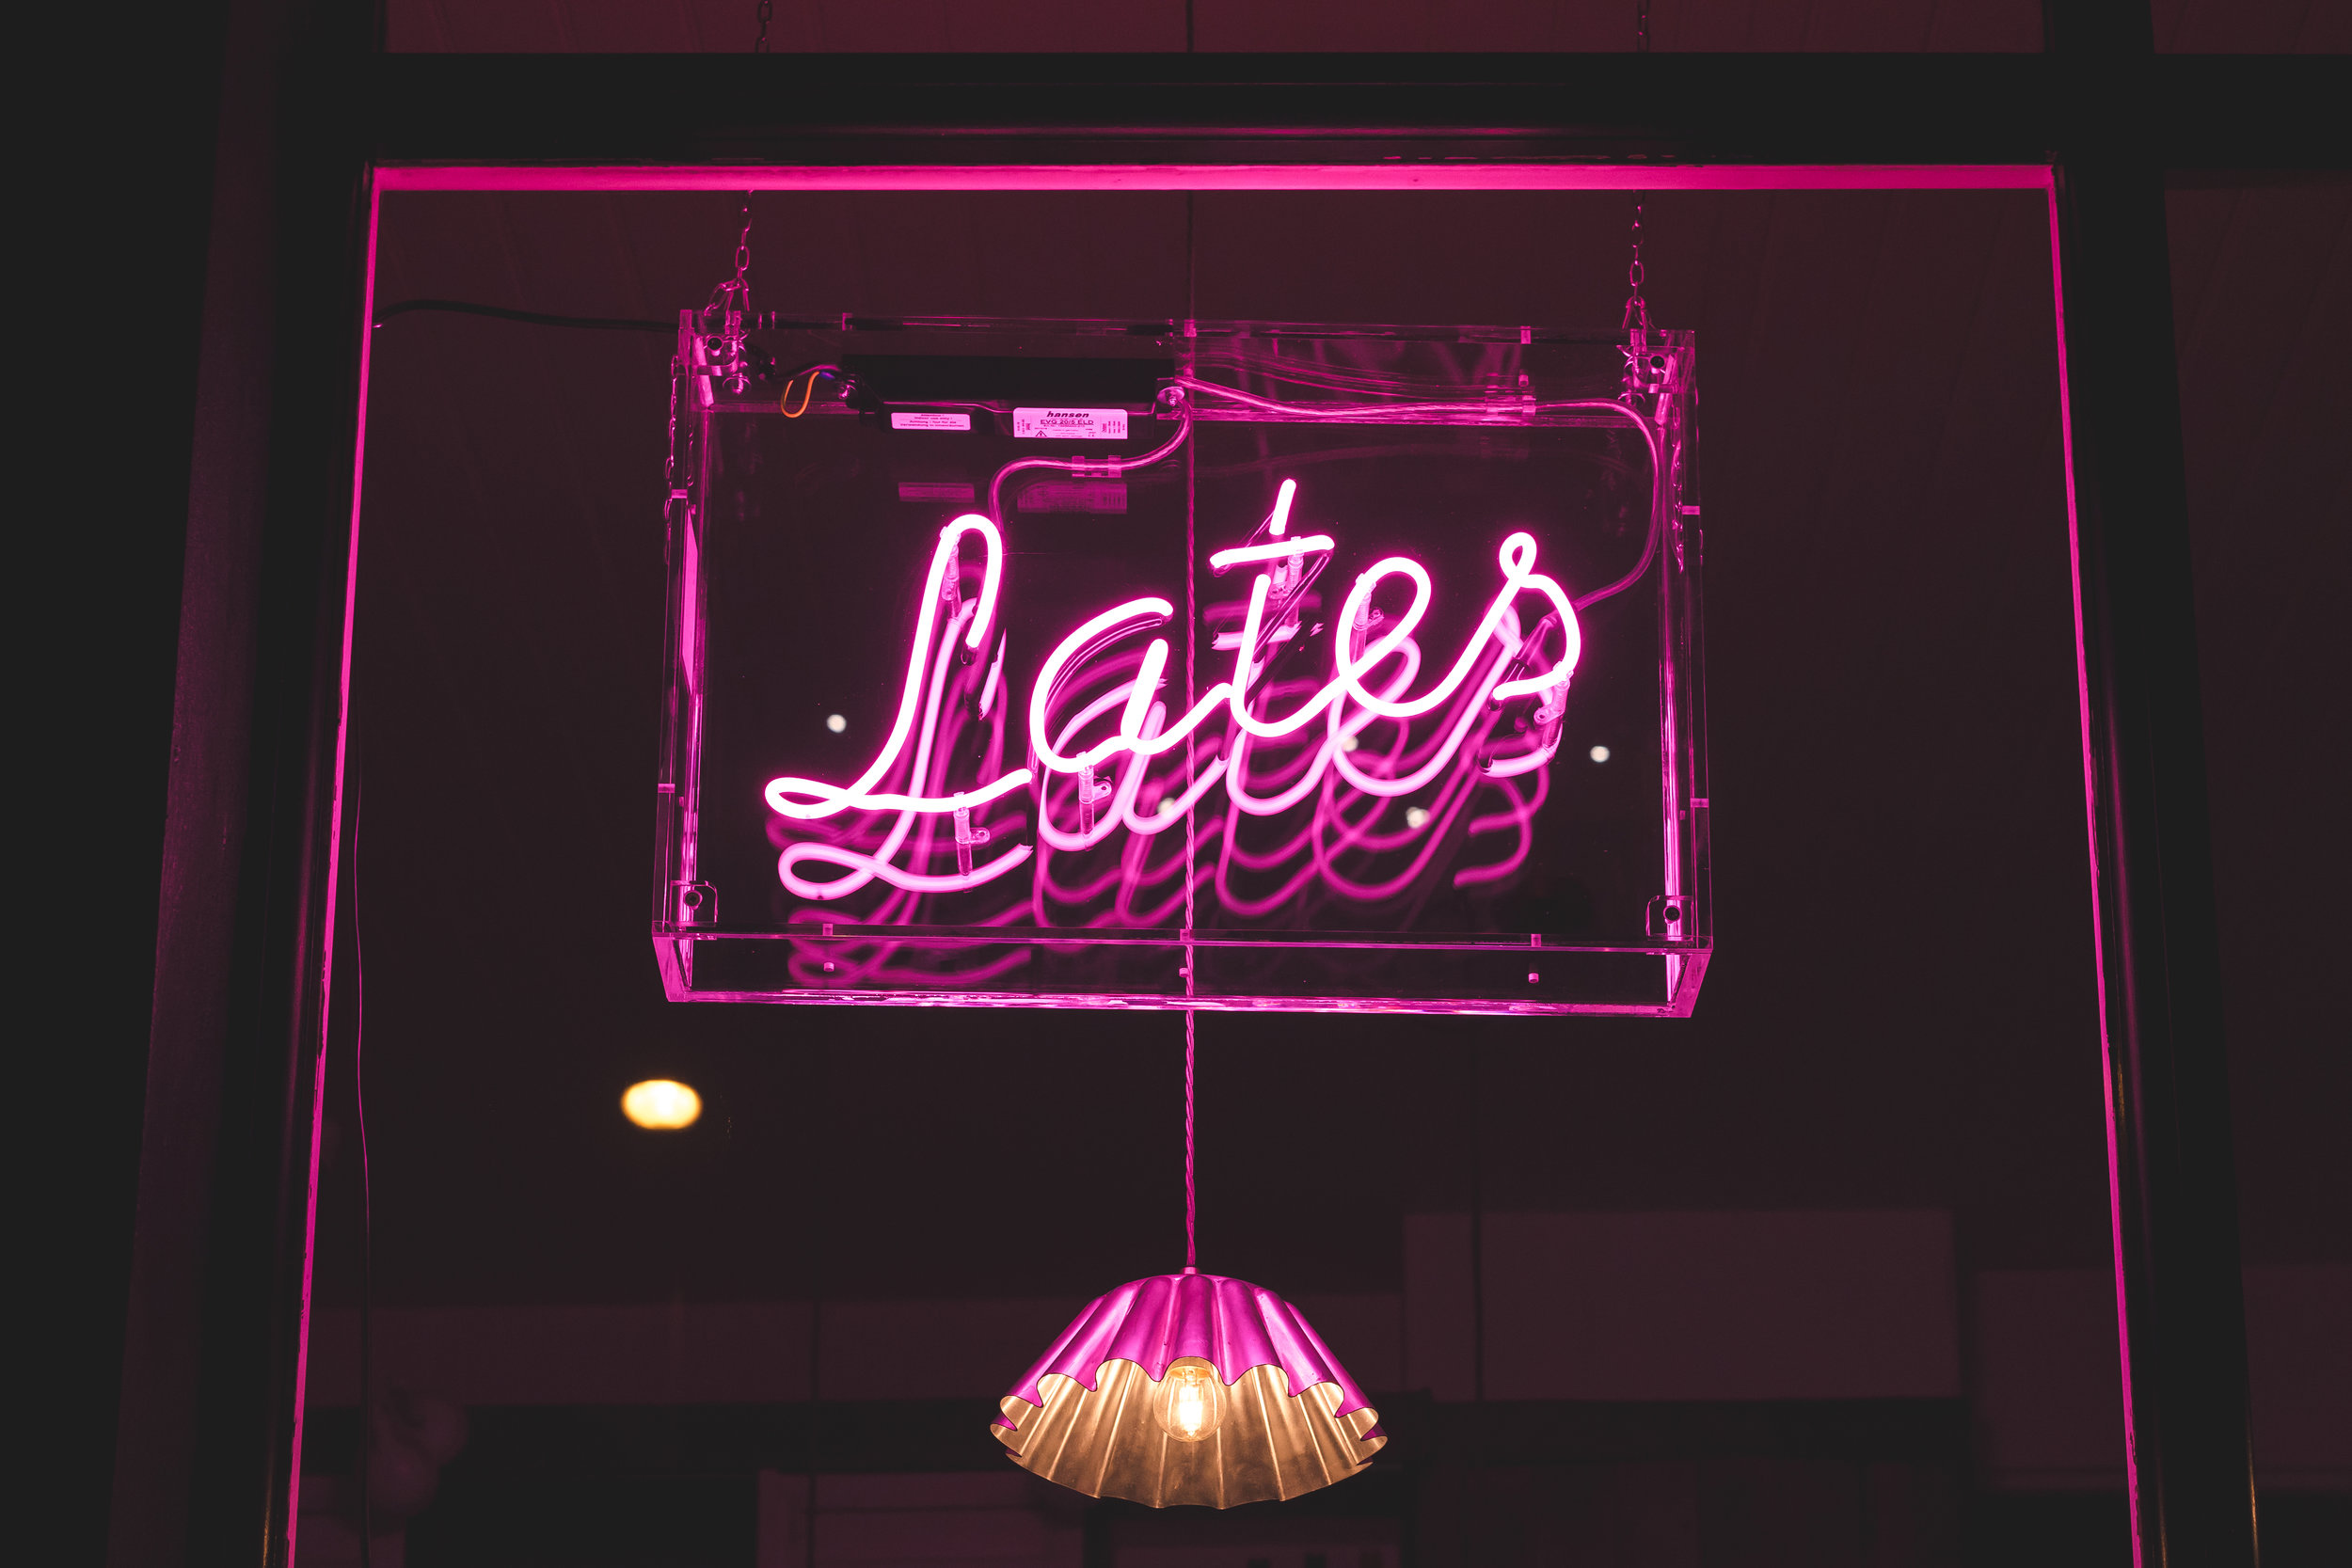 When the pink neon 'Lates' sign is on… - we're open - come down and say hi!